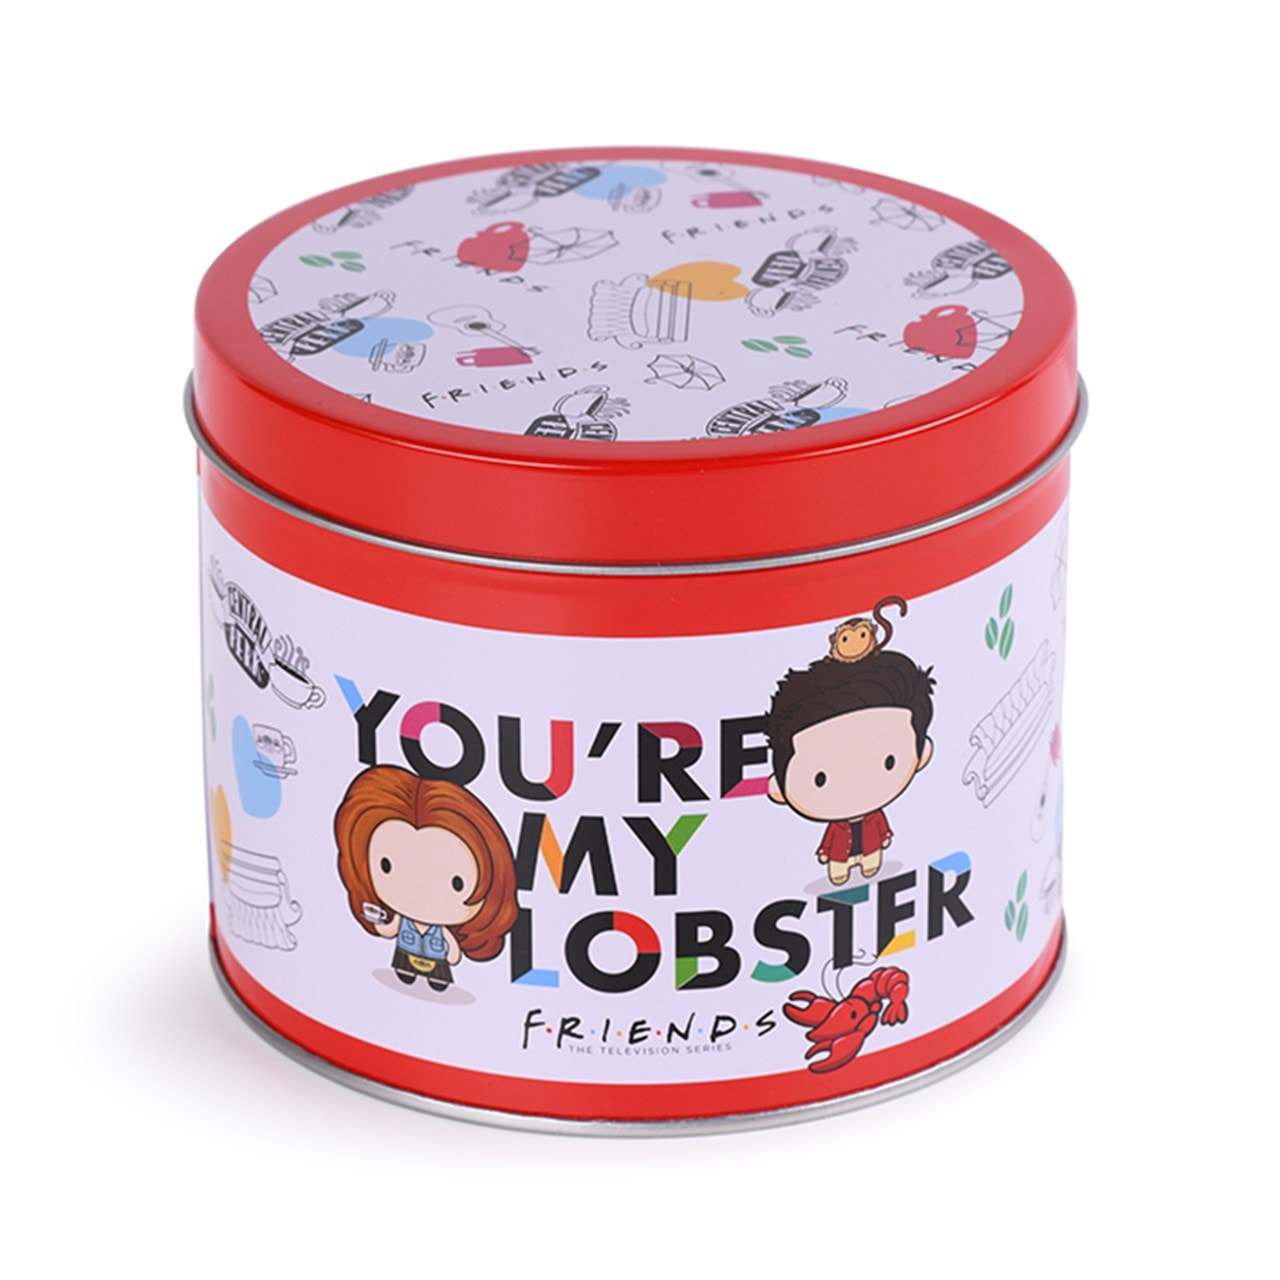 You're My Lobster: Friends Mug Gift Set in Tin - 3